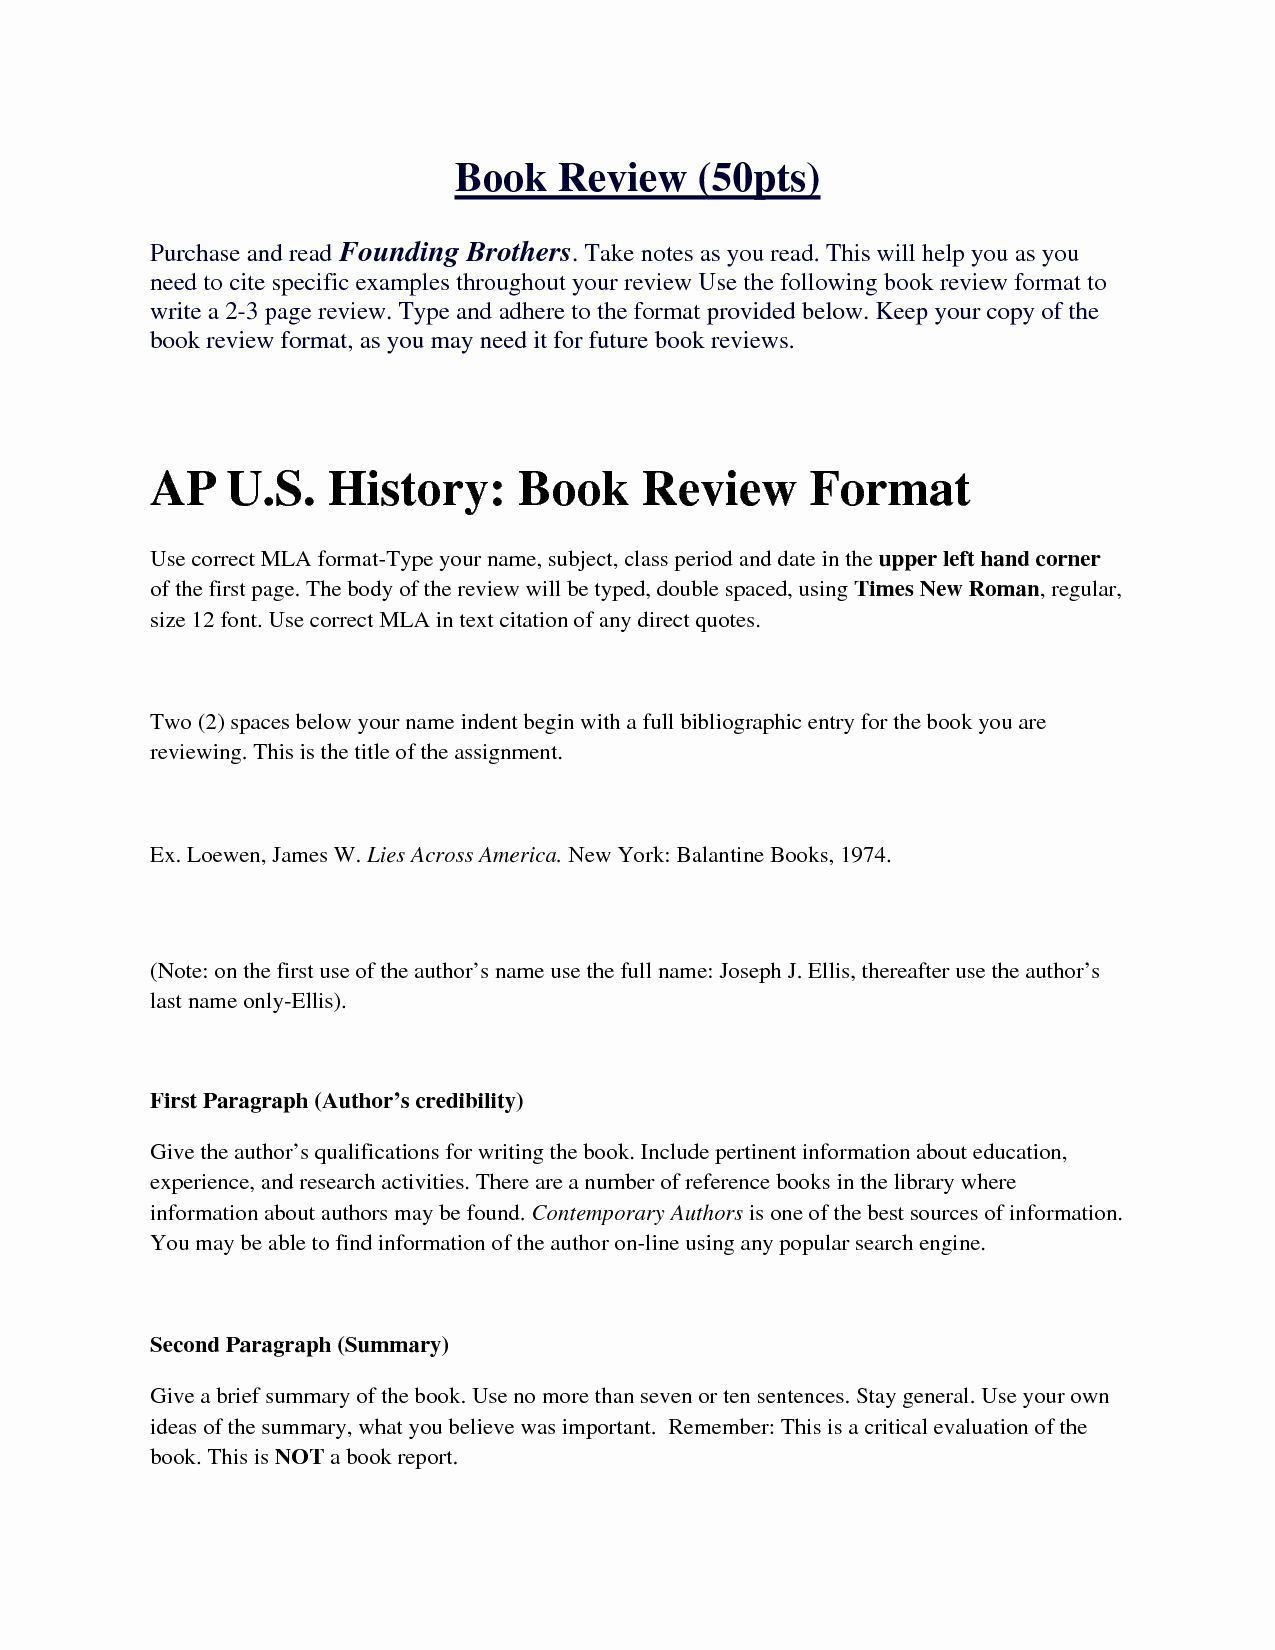 Book Analysis format Sample Best Of How to Write A Review Essay On A Book Readwrite is the